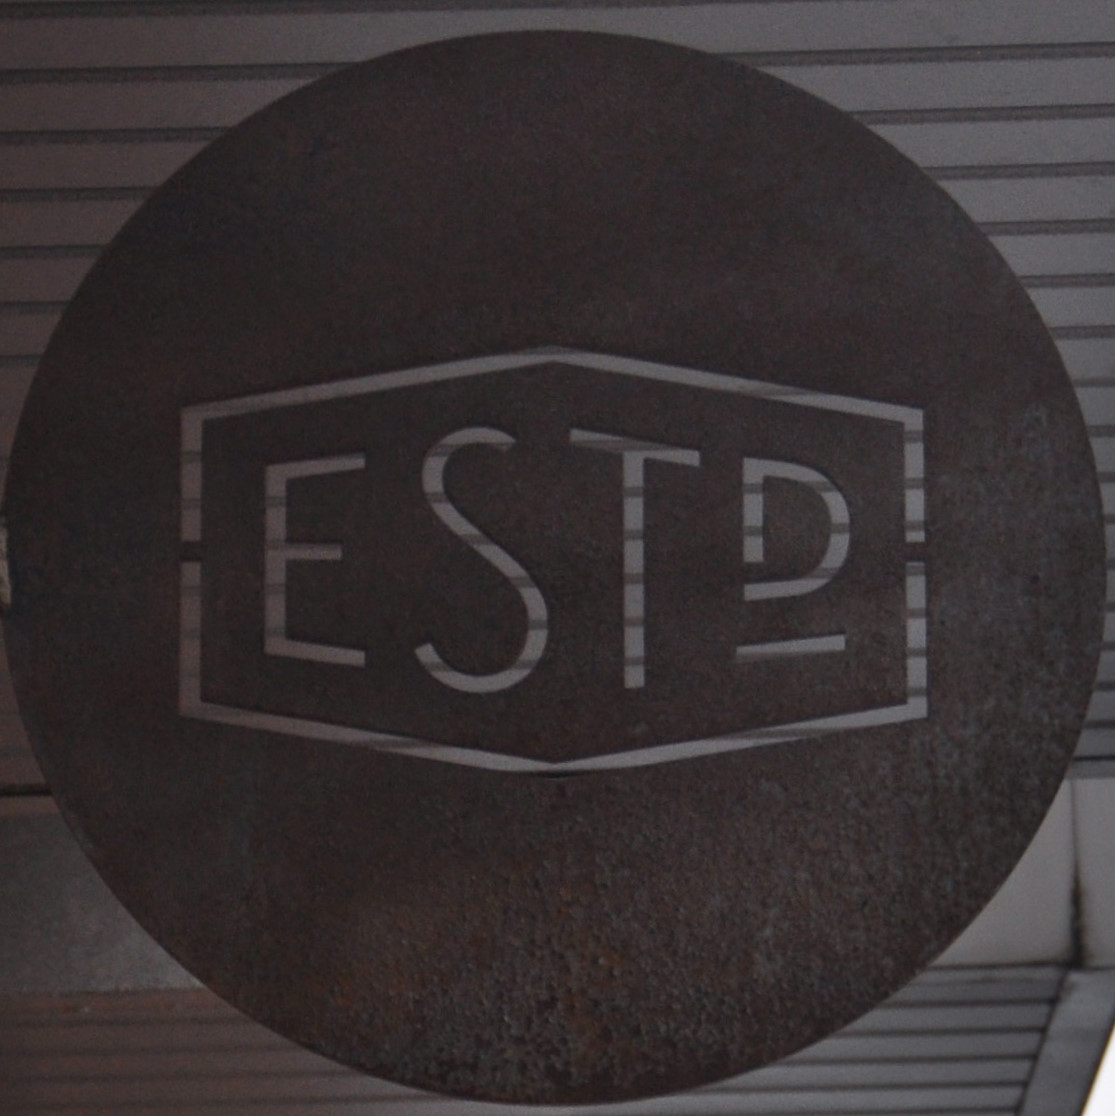 Detail from the sign outside Established Coffee in Belfast, showing the letters ESTD.